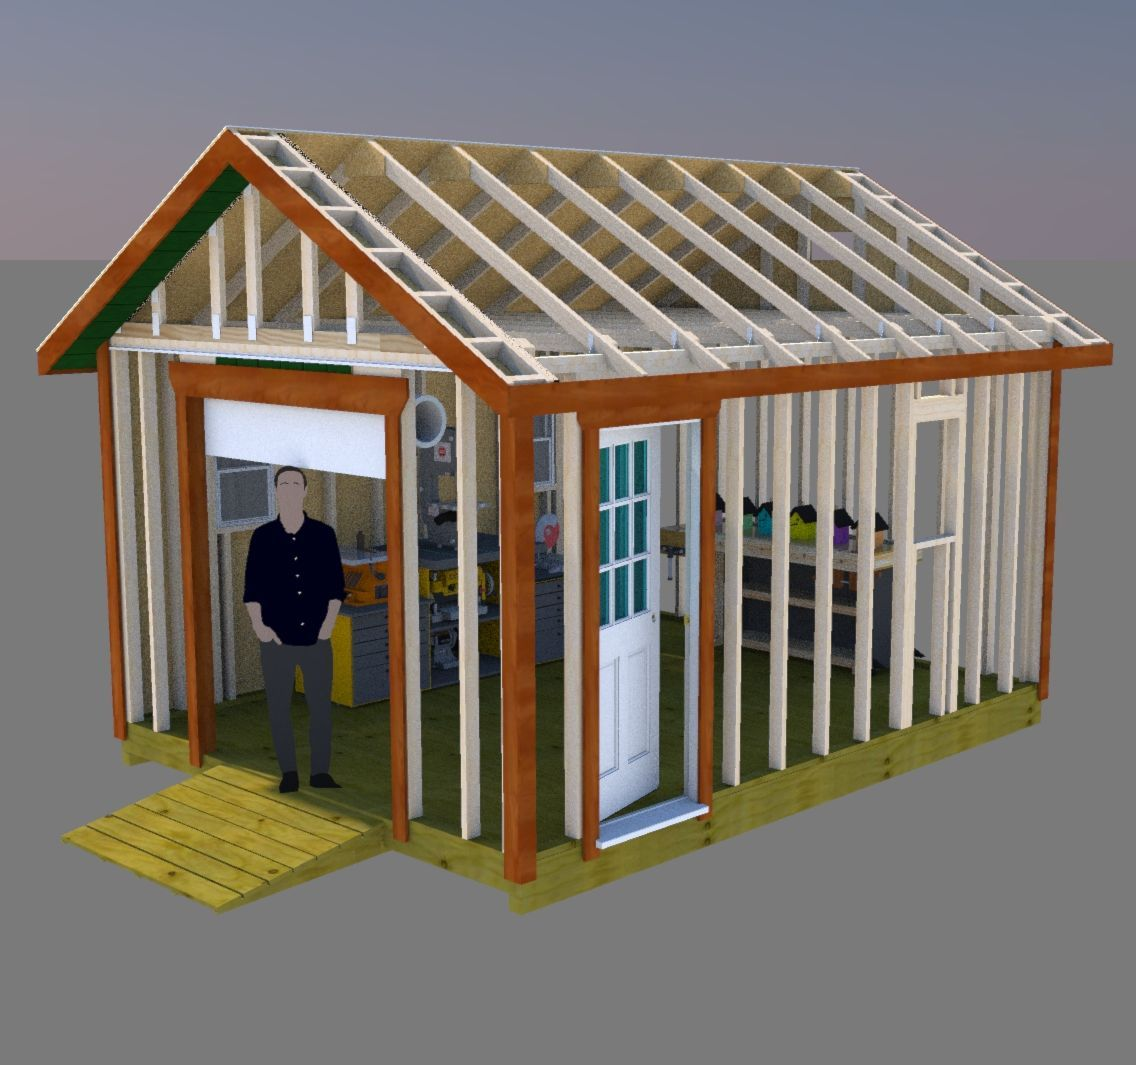 12x16 Gable Storage Shed Plans With Roll Up Shed Door Diy Shed Plans Building A Shed Shed Doors